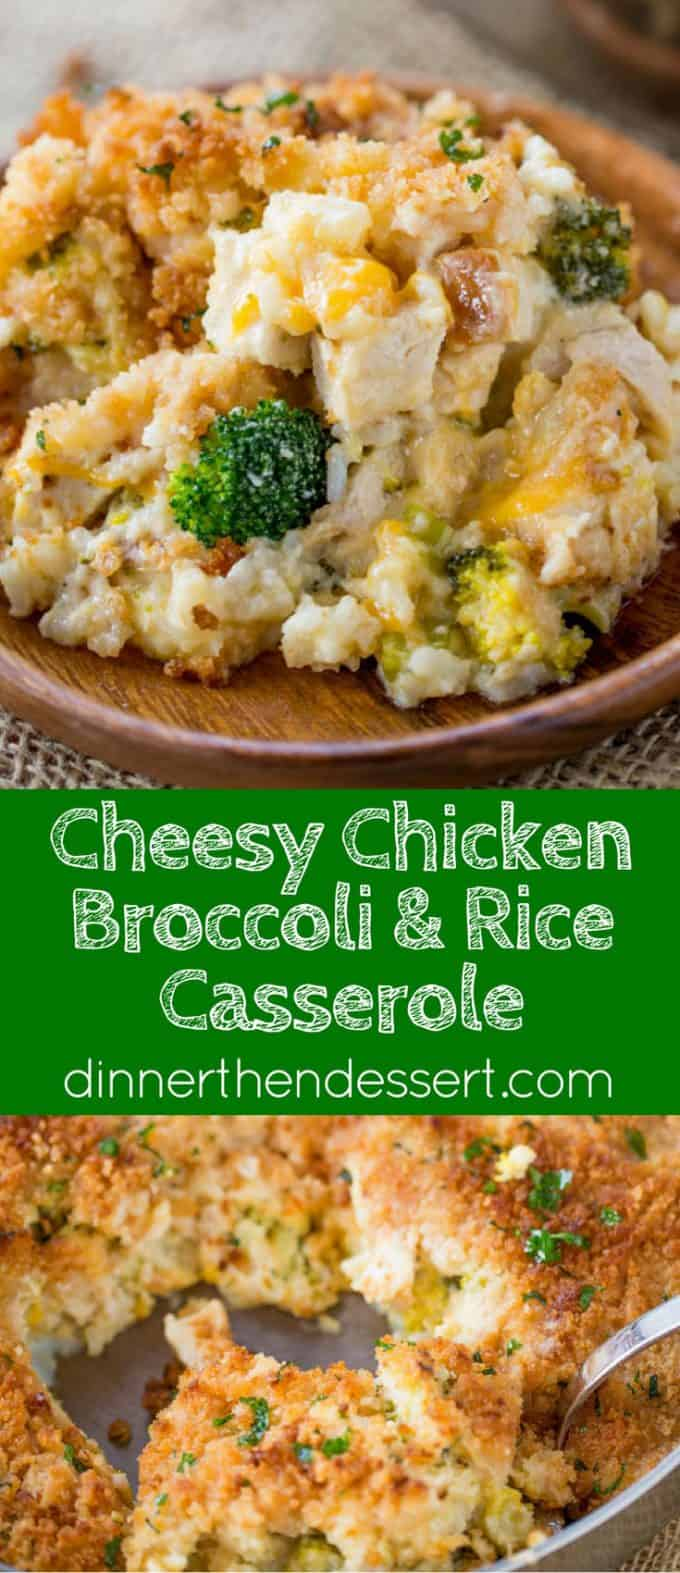 Cheesy Chicken Broccoli Rice Casserole with no canned products is the perfect one pan meal with a creamy sauce and crispy topping your whole family will enjoy.